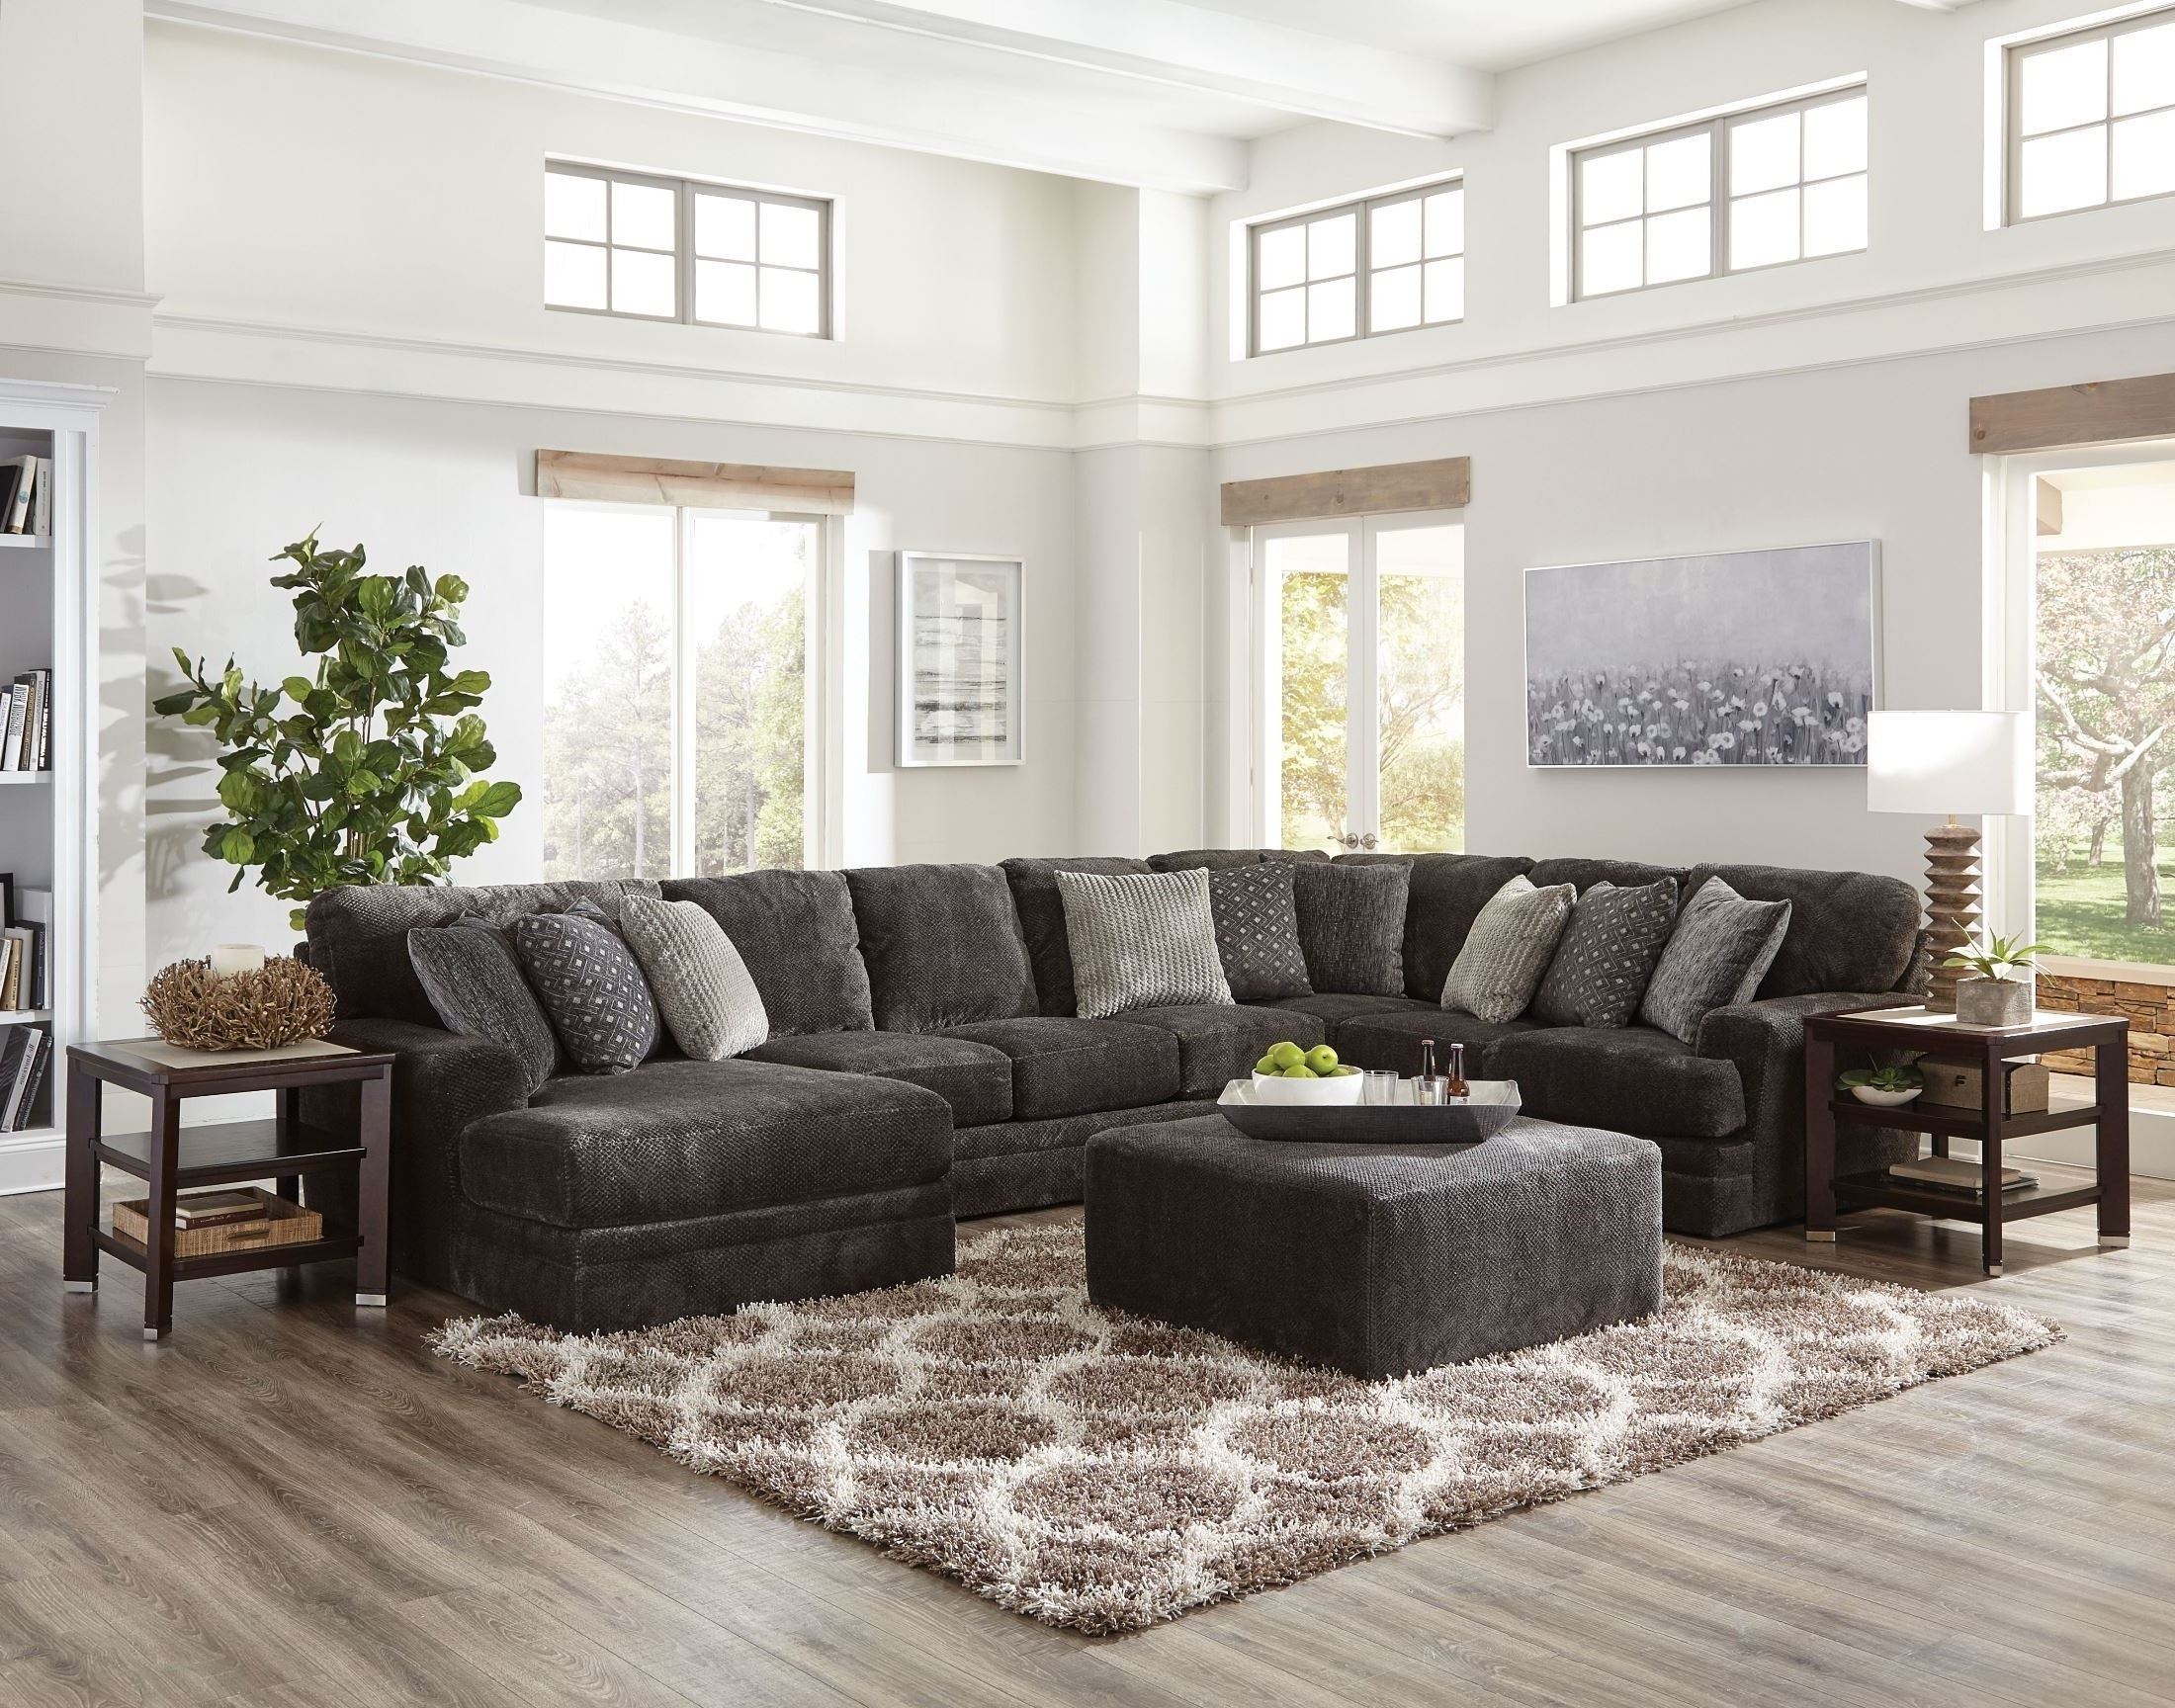 Mammoth Smoke Laf Chaise Sectional From Jackson | Coleman Furniture Throughout Avery 2 Piece Sectionals With Laf Armless Chaise (View 15 of 25)